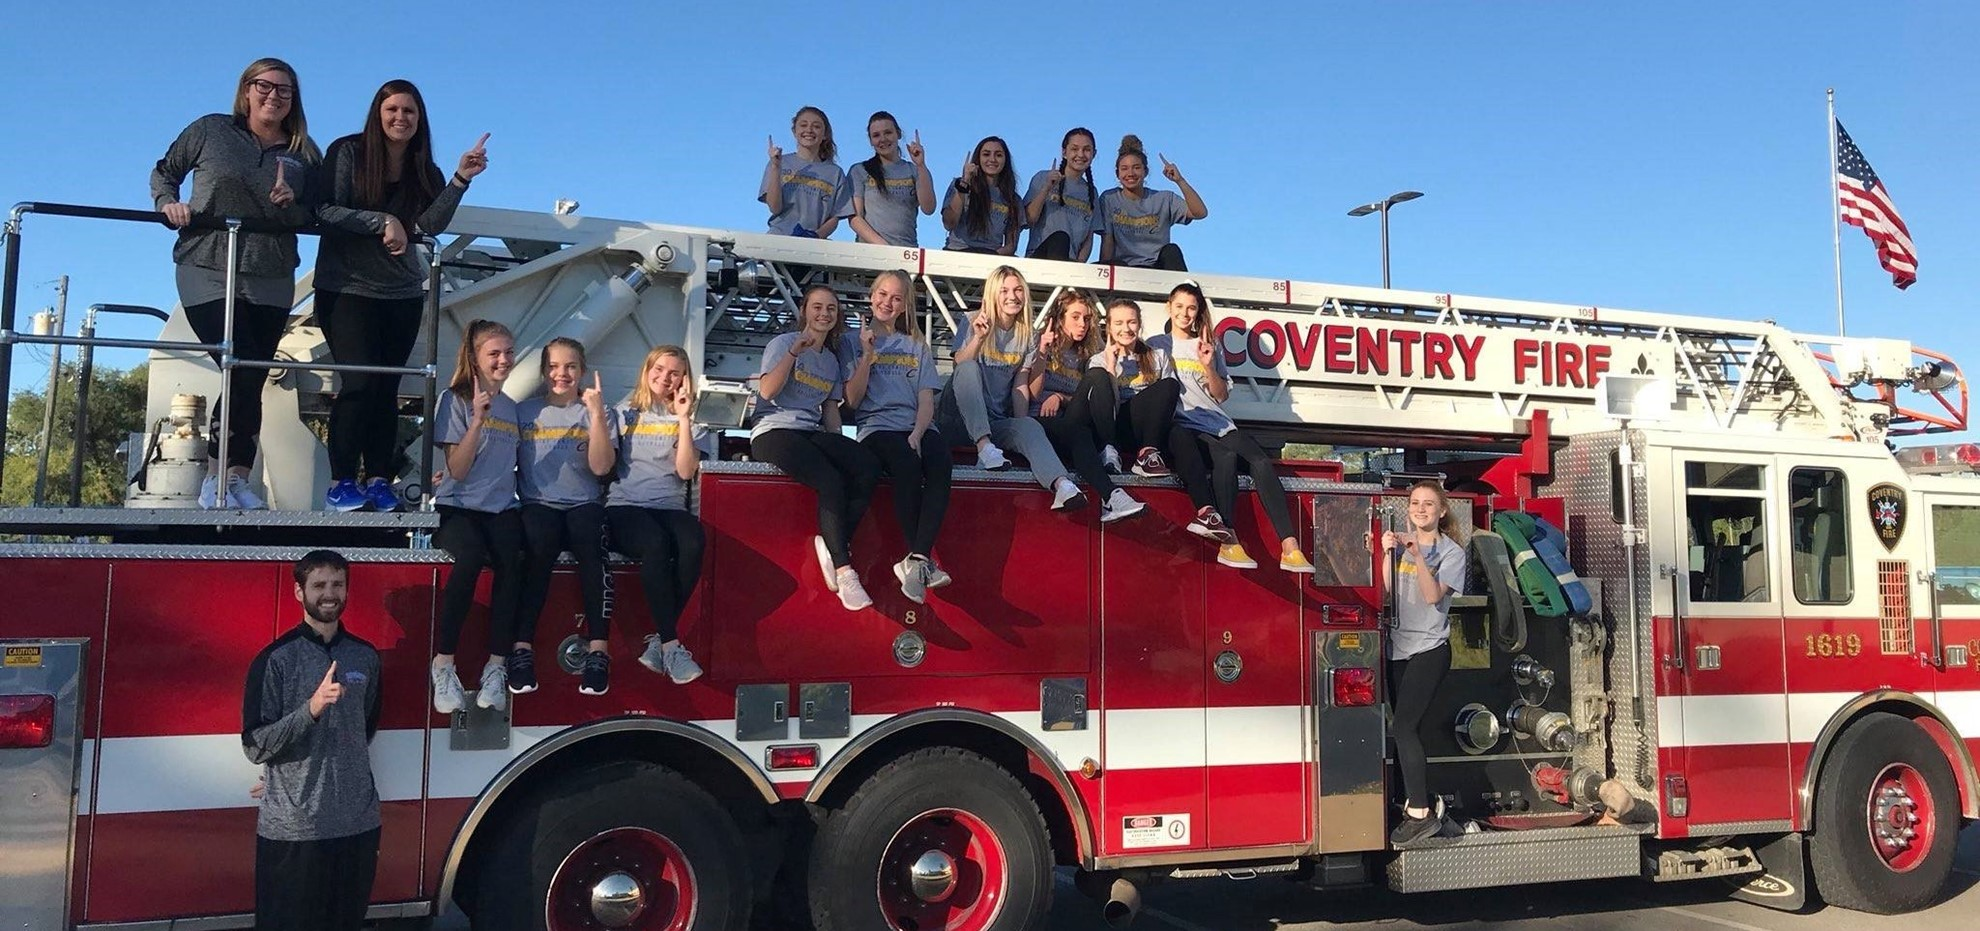 Volleyball on Fire Truck